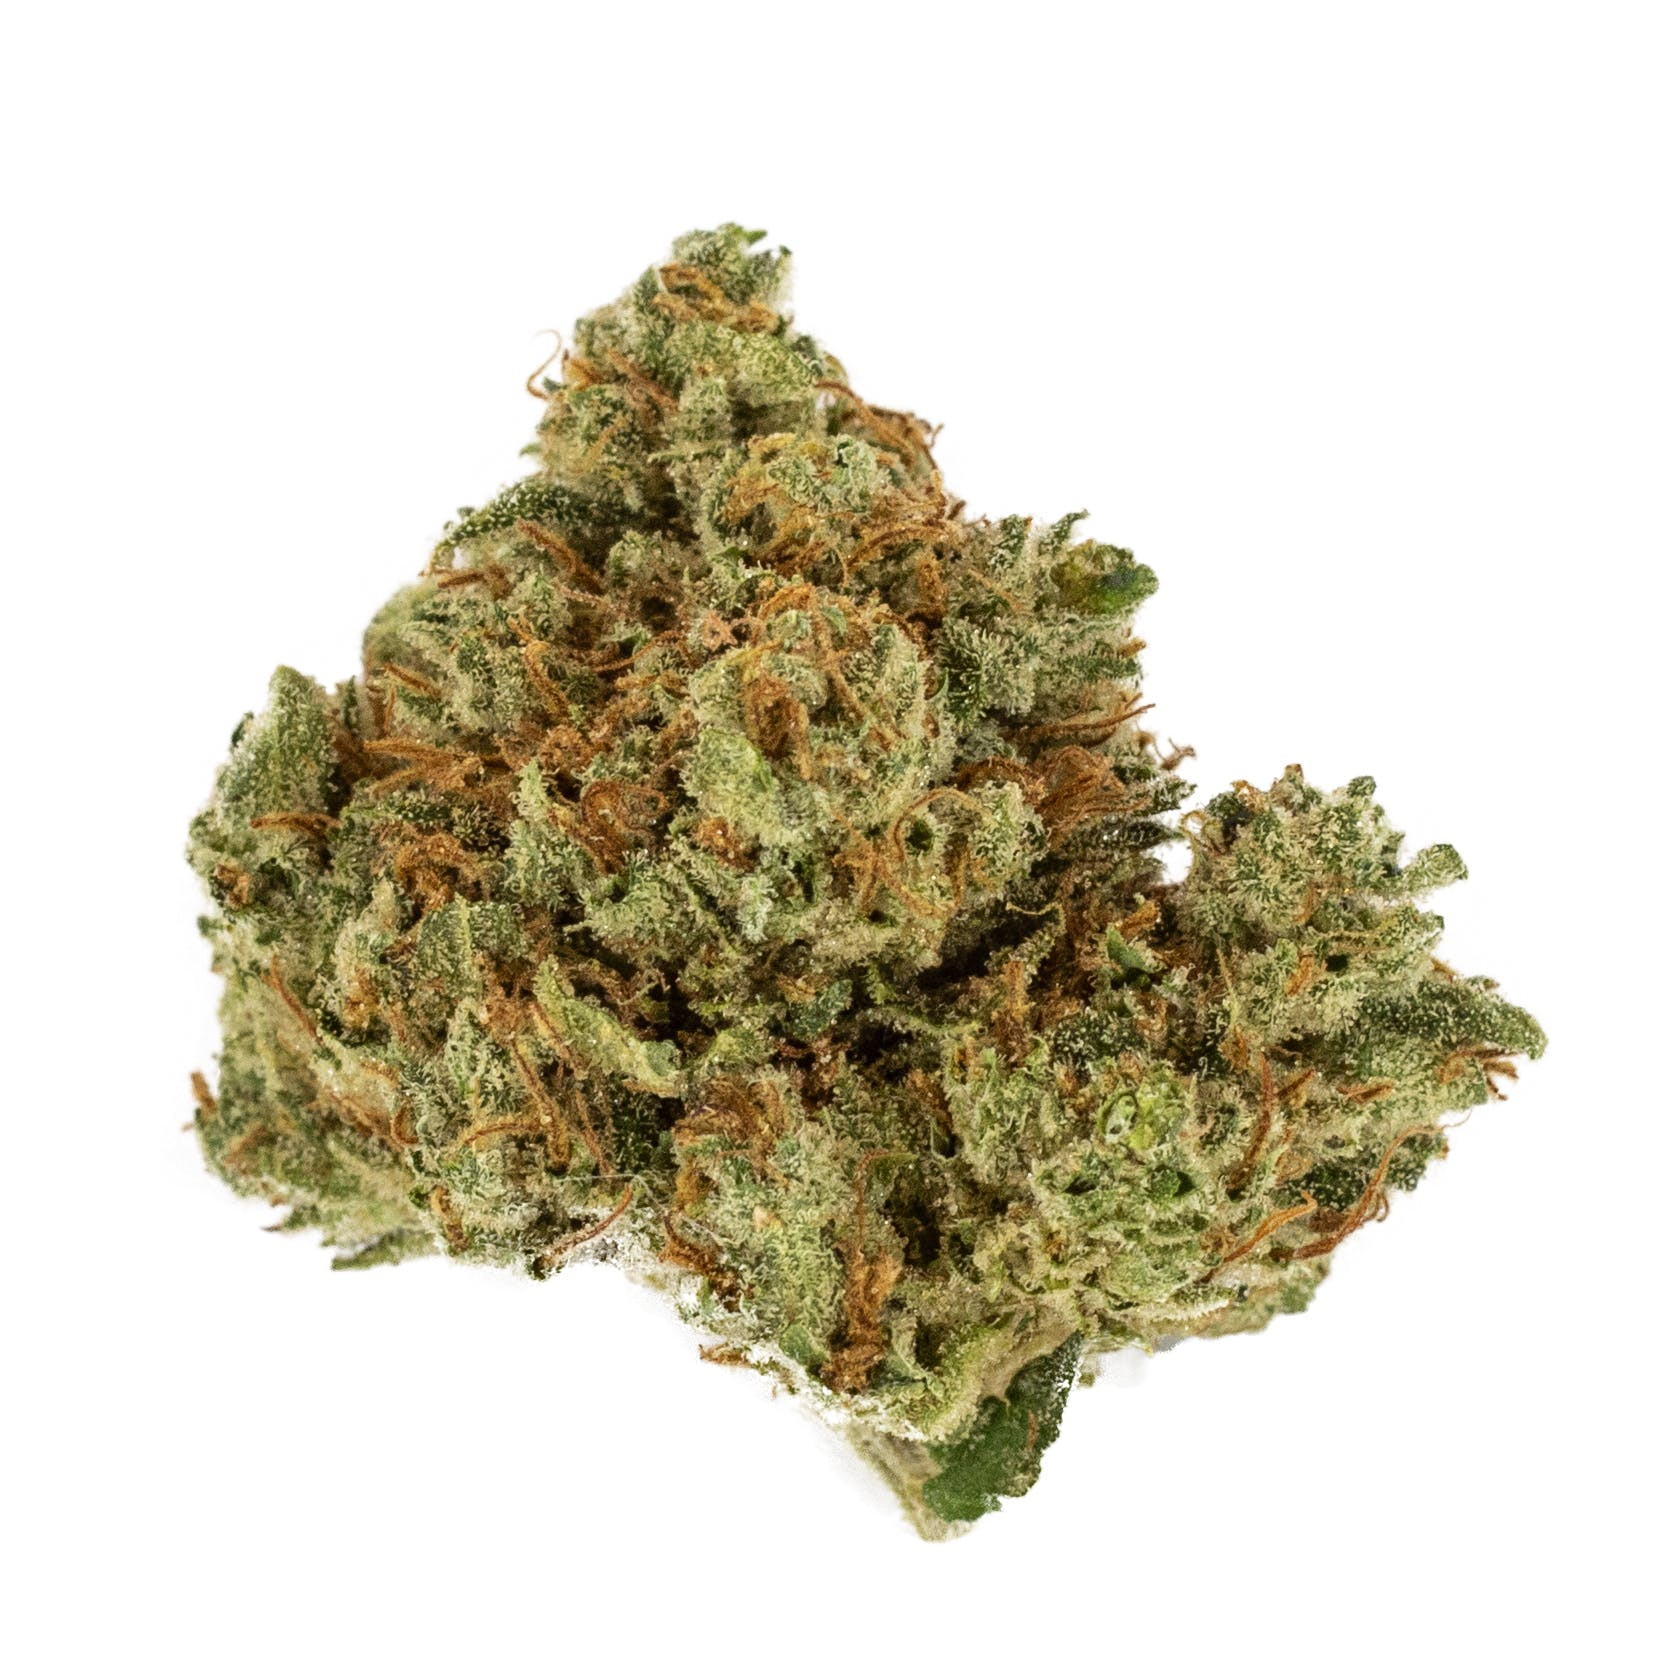 marijuana-dispensaries-bloom-medicinals-cannabis-dispensary-in-germantown-chem-de-la-chem